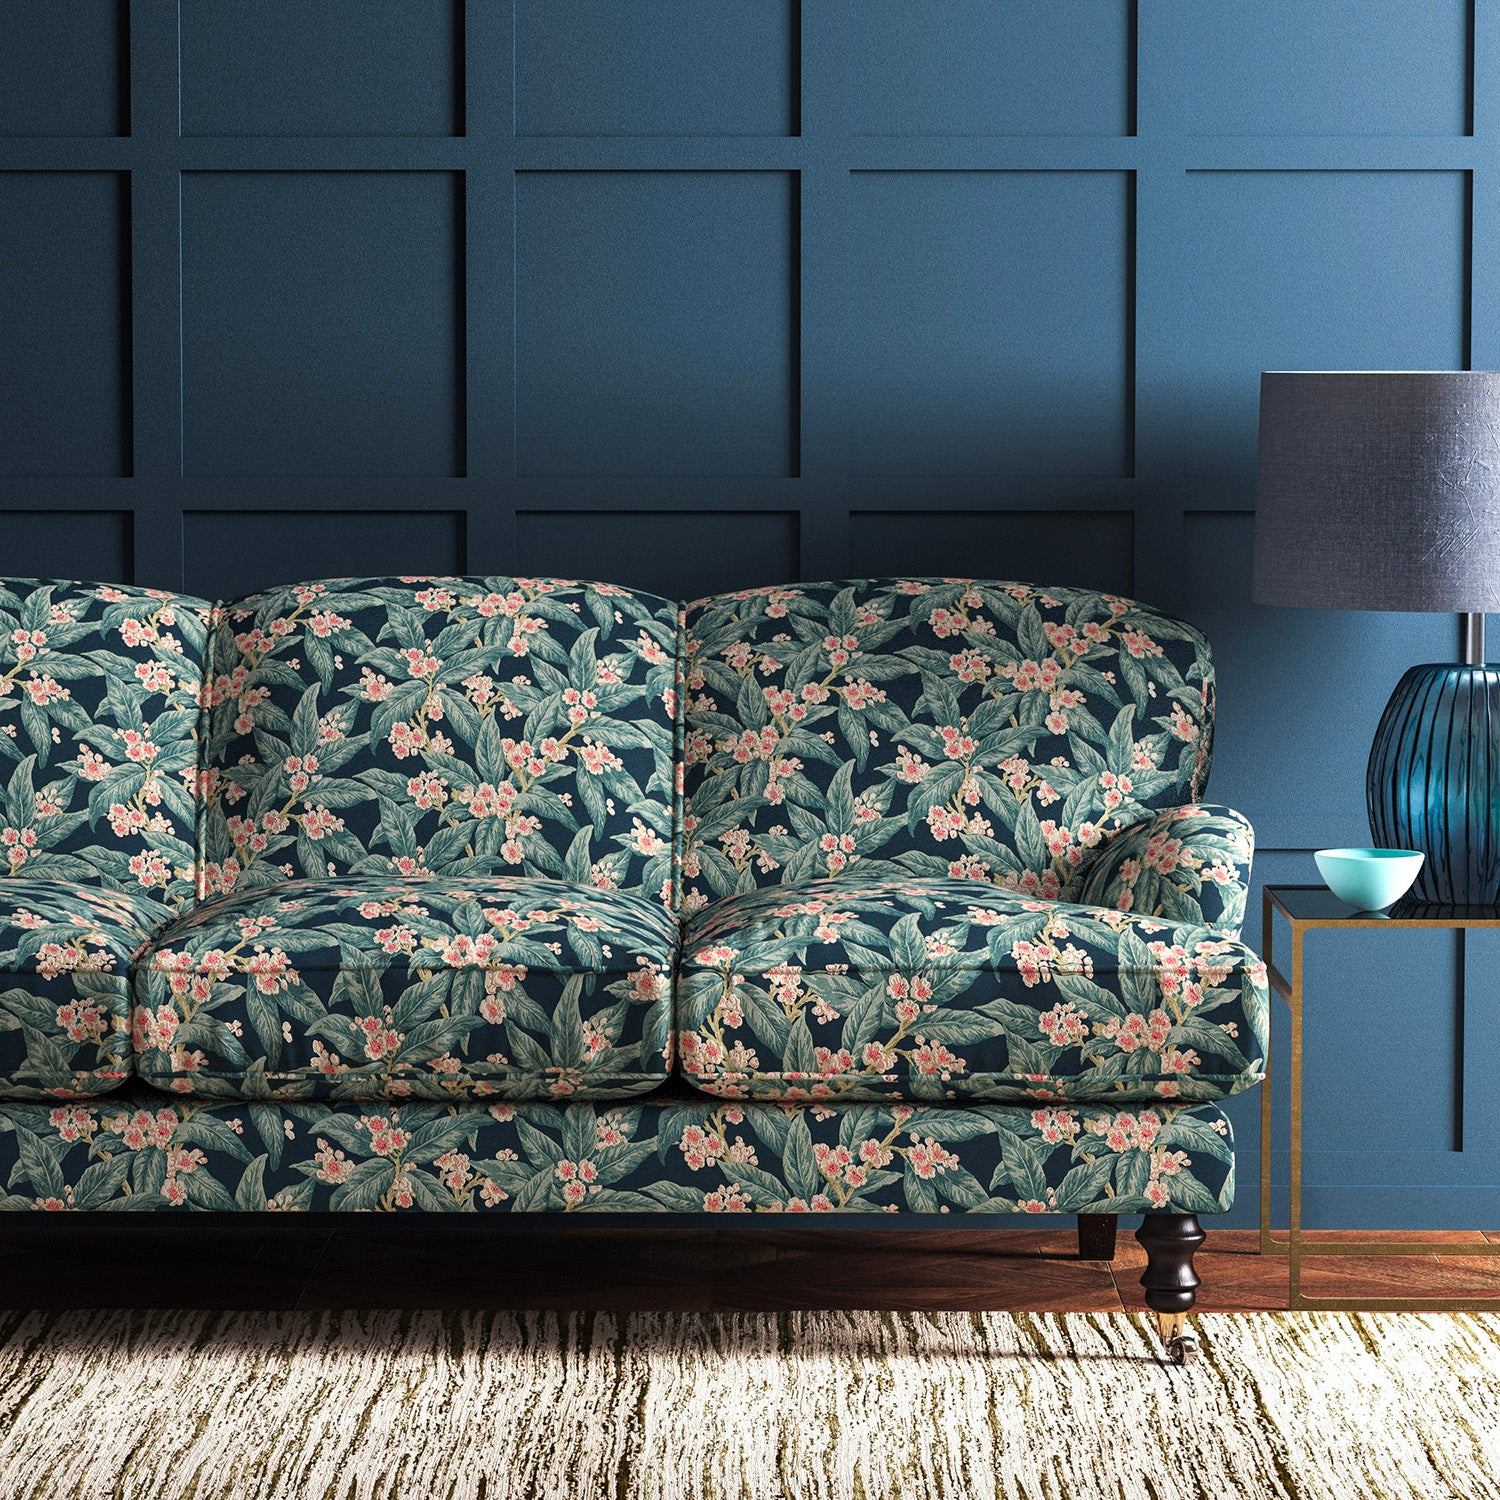 Velvet sofa upholstered in a blue leaf and blossom velvet upholstery fabric with a stain resistant finish